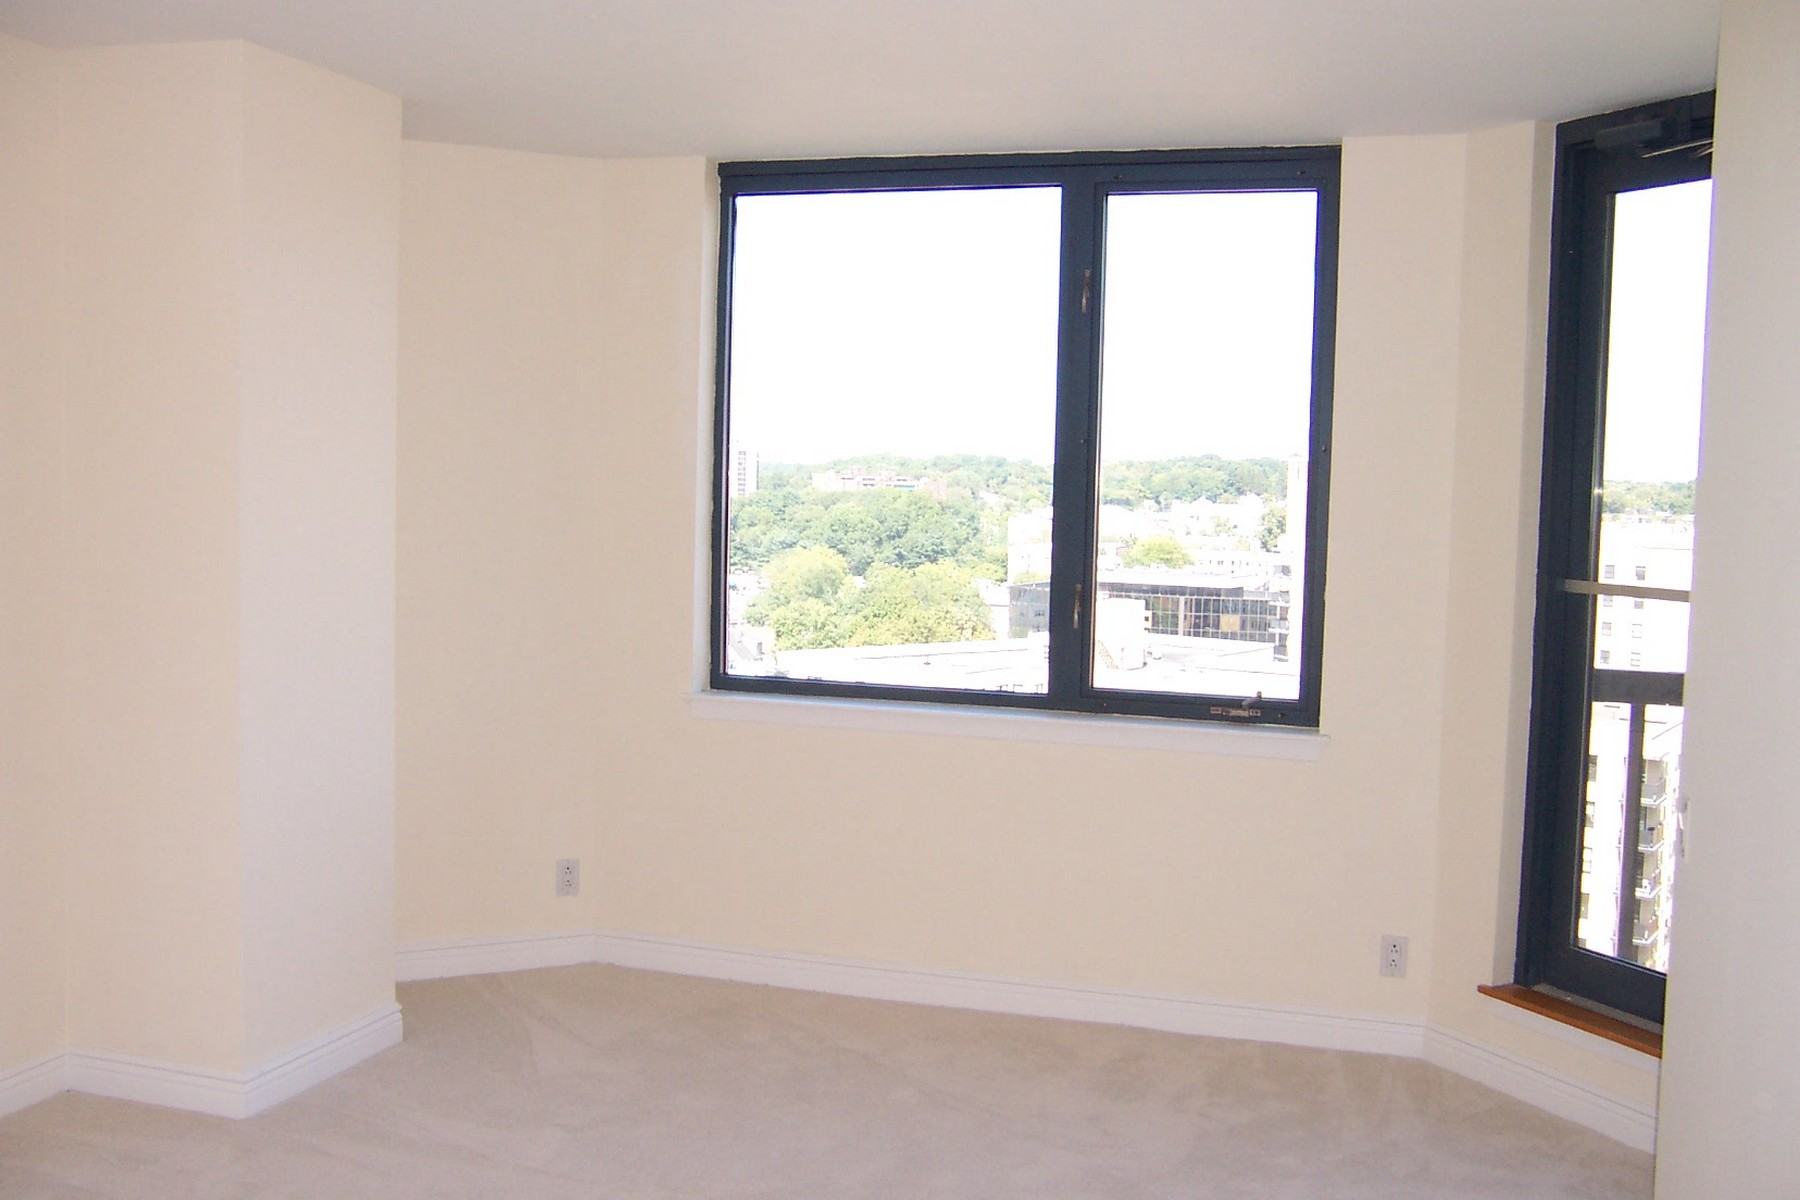 Additional photo for property listing at The Classic 25 Forest Street 16B Stamford, Connecticut 06901 United States